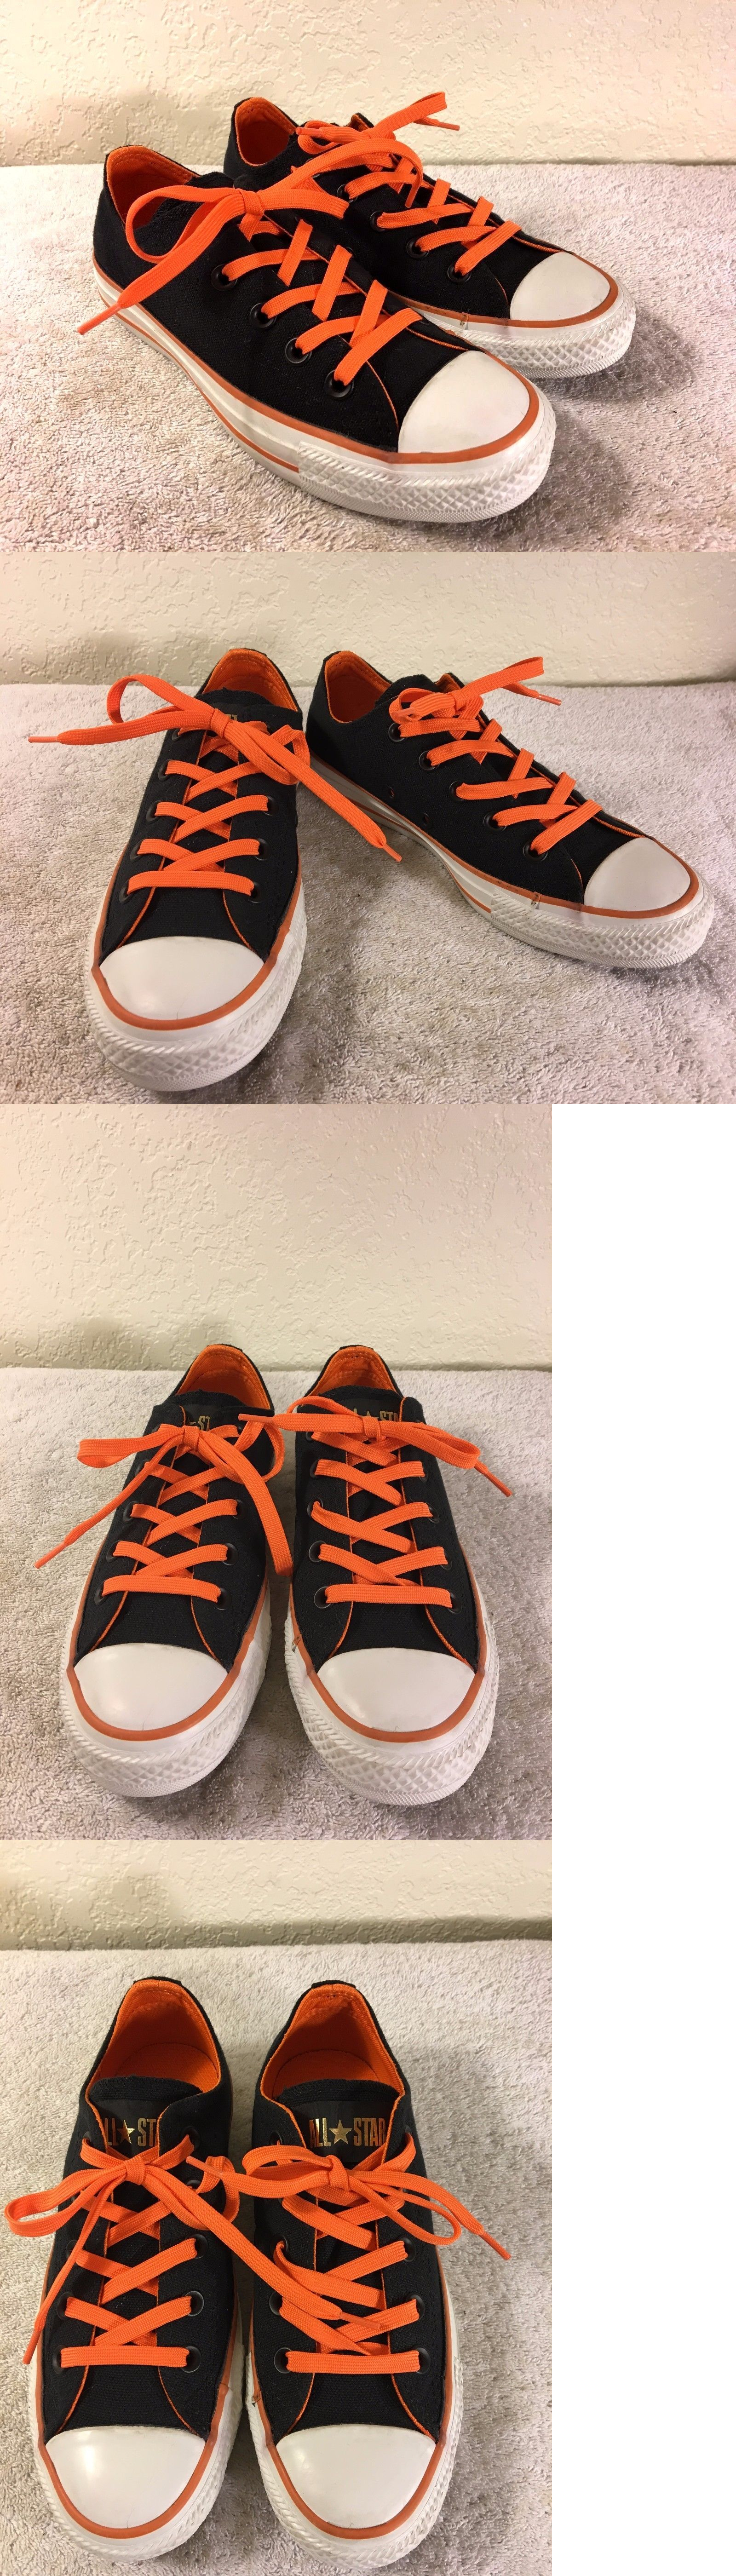 Women All Shapes And Sizes: Converse All Star Womens Low Top Black And Orange Shoes Size 5.5 Nice Shape!!! BUY IT NOW ONLY: $28.49